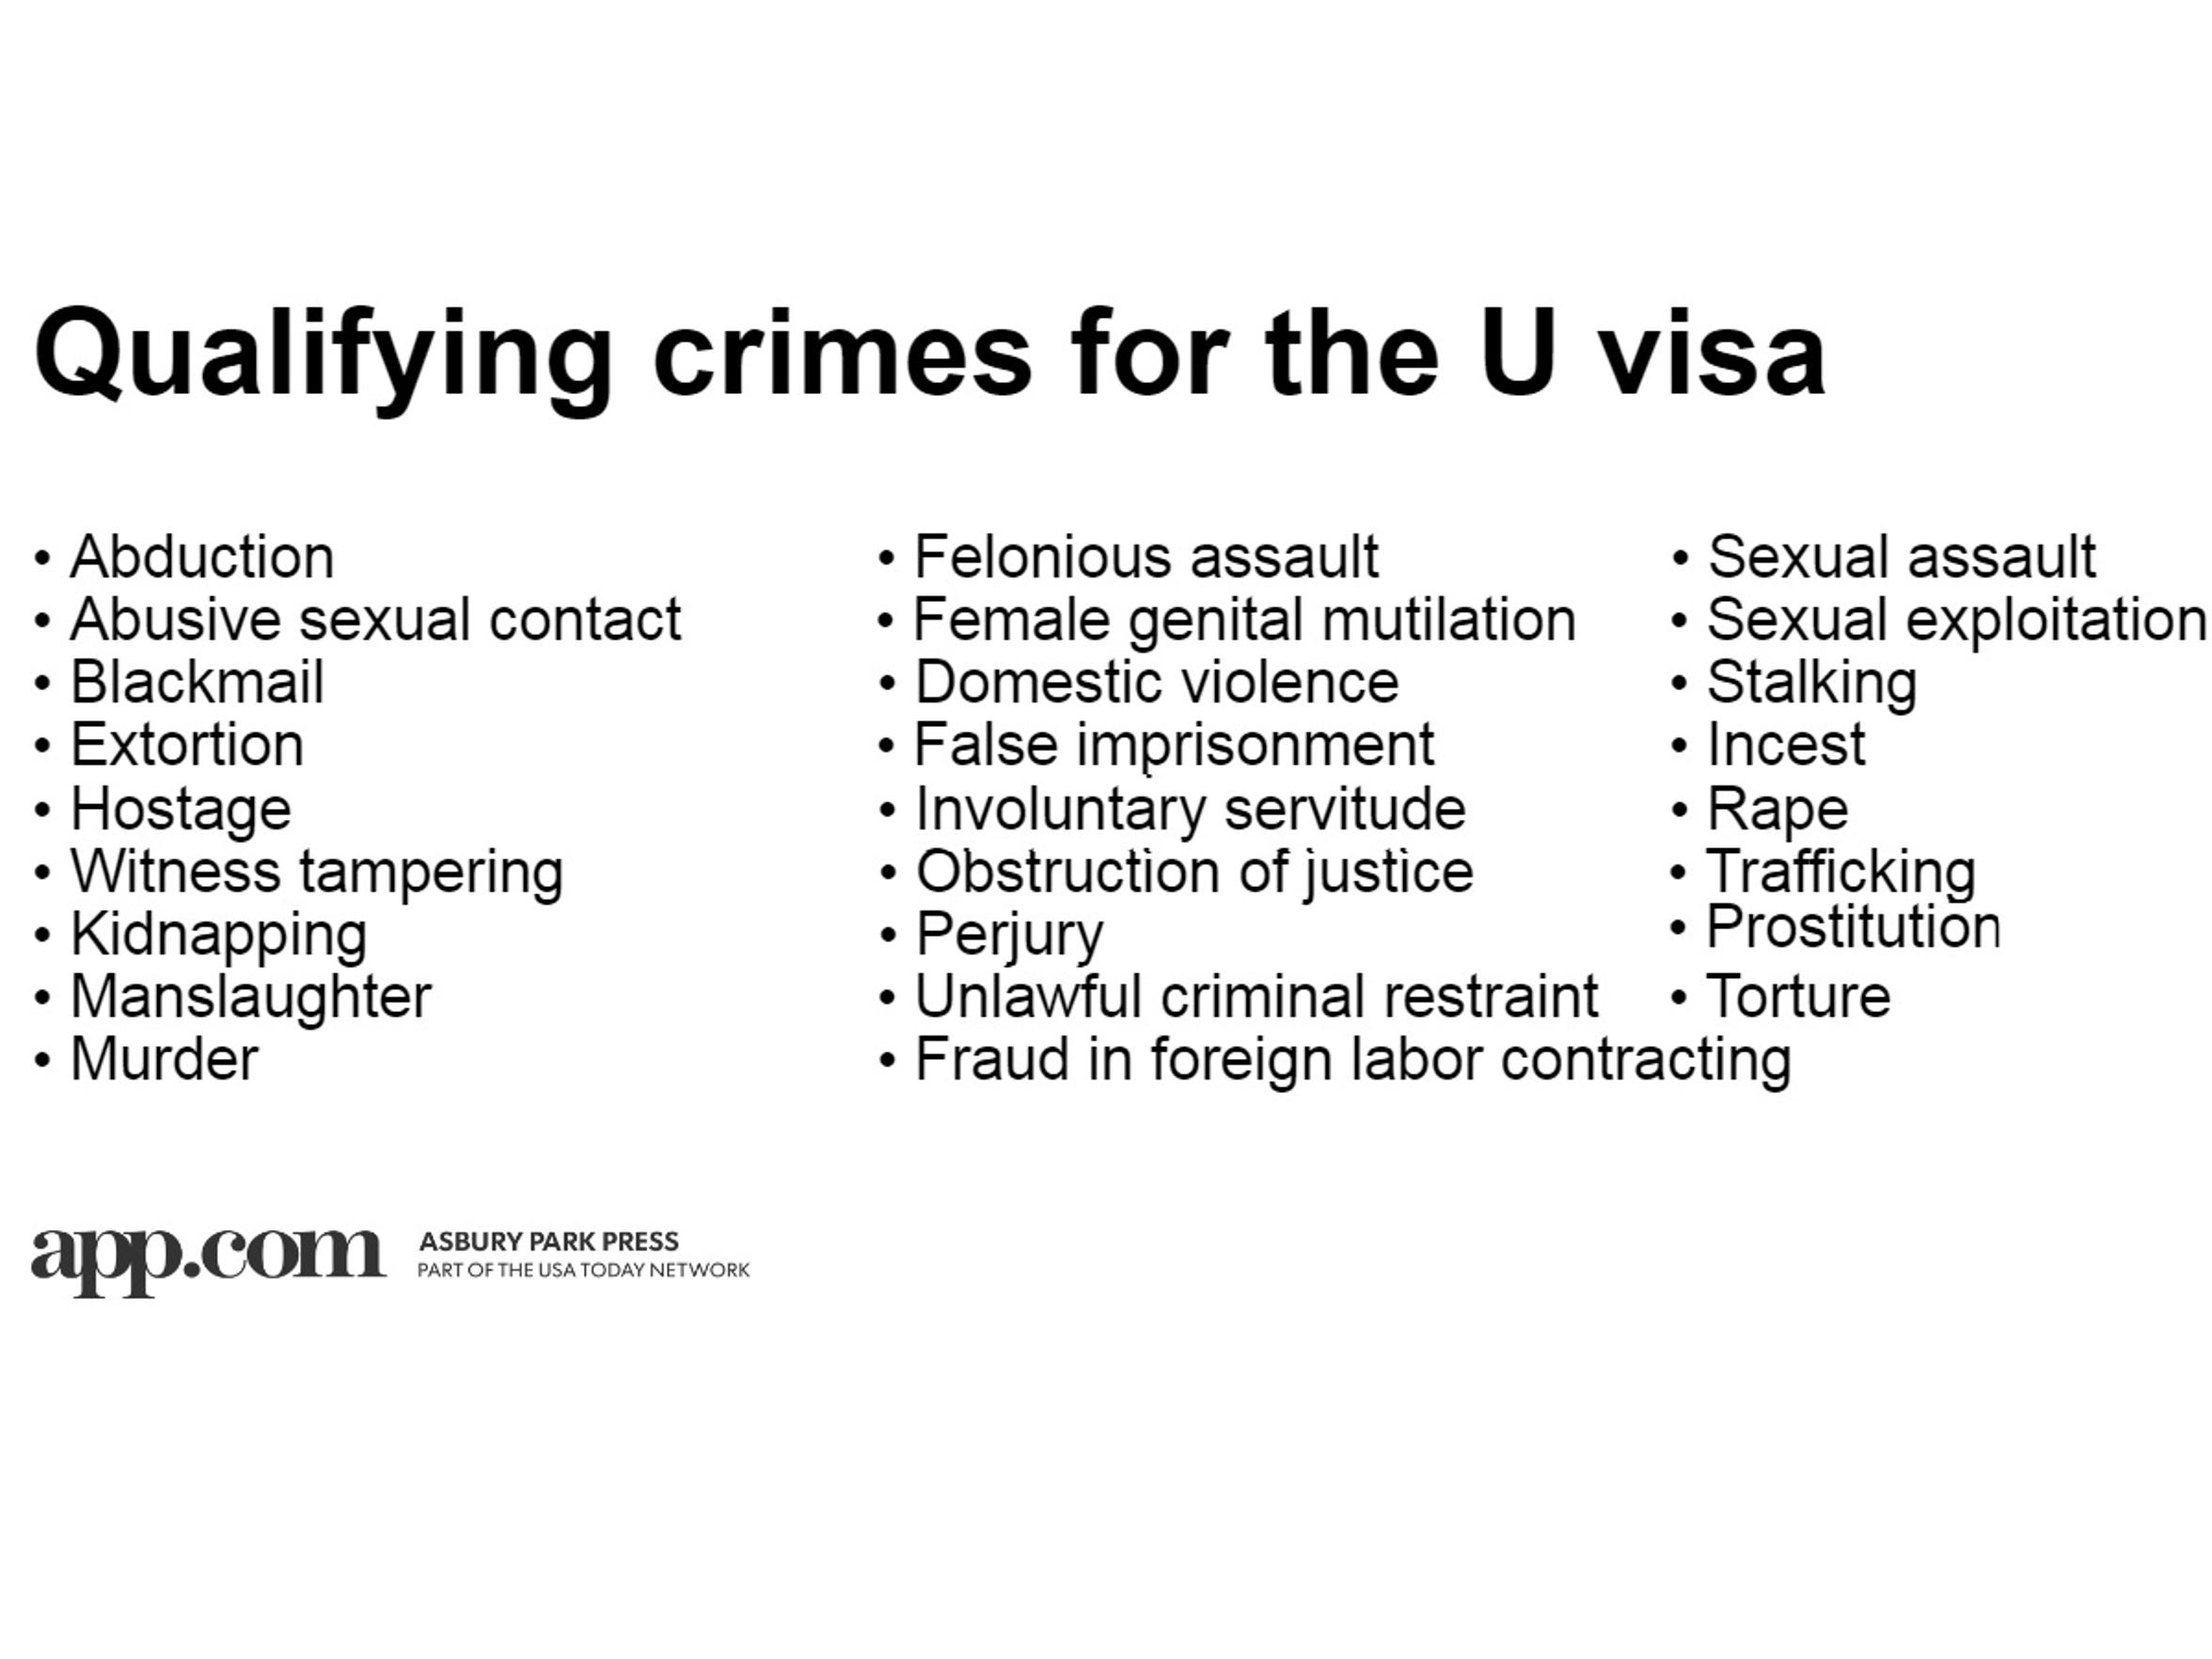 A list of federal crimes that could qualify a victim